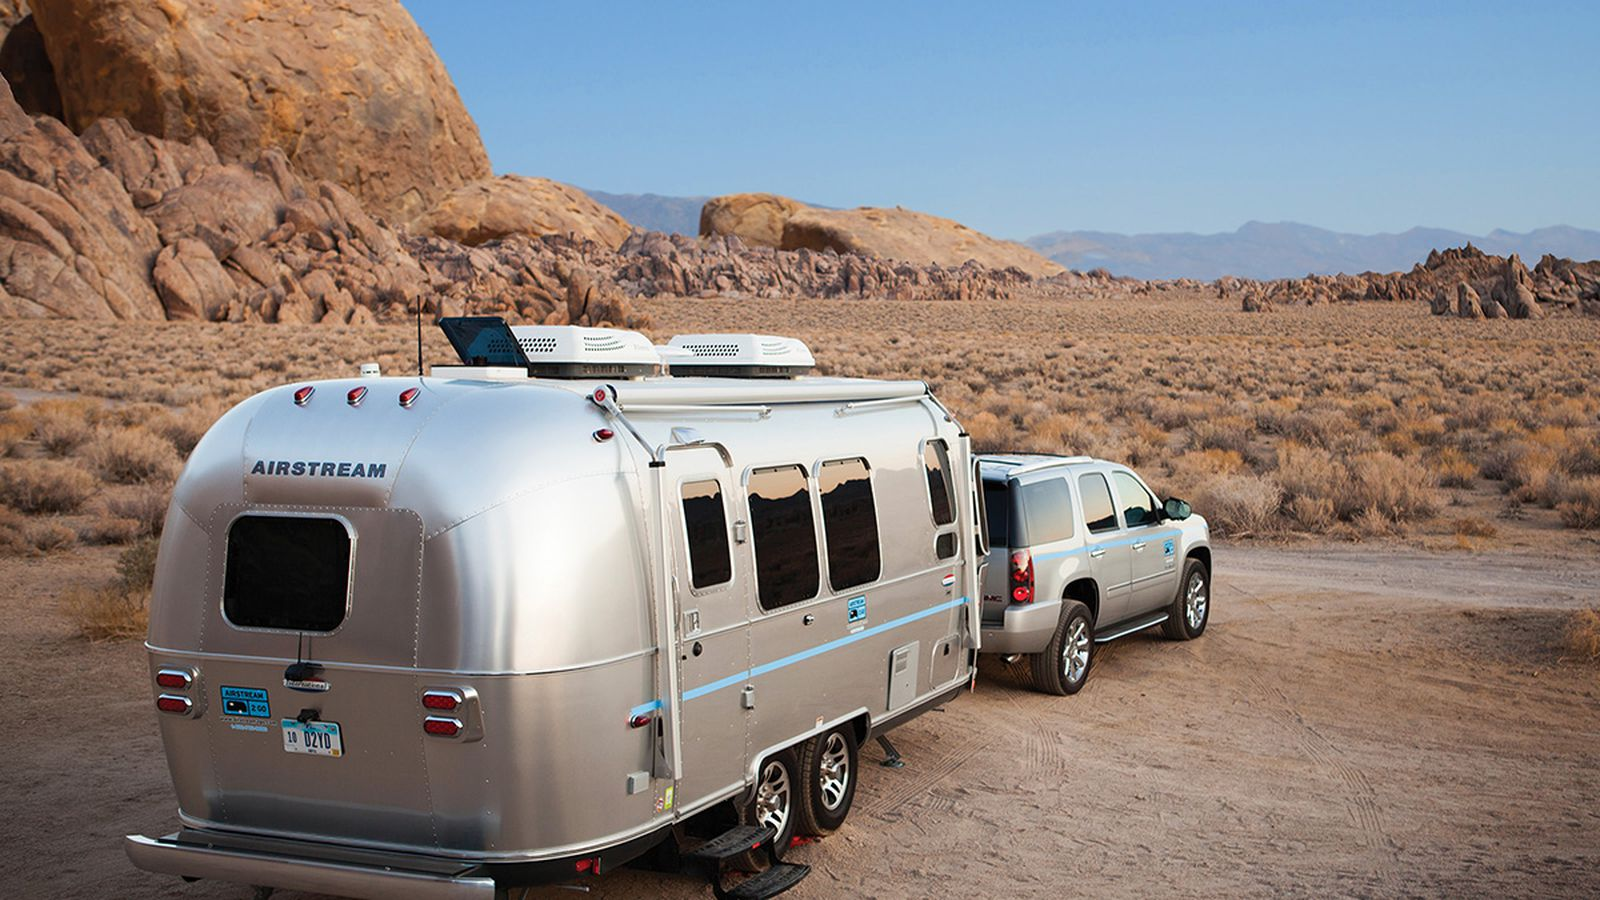 Airstream 2 Go lets you try camper life on for size - Curbed